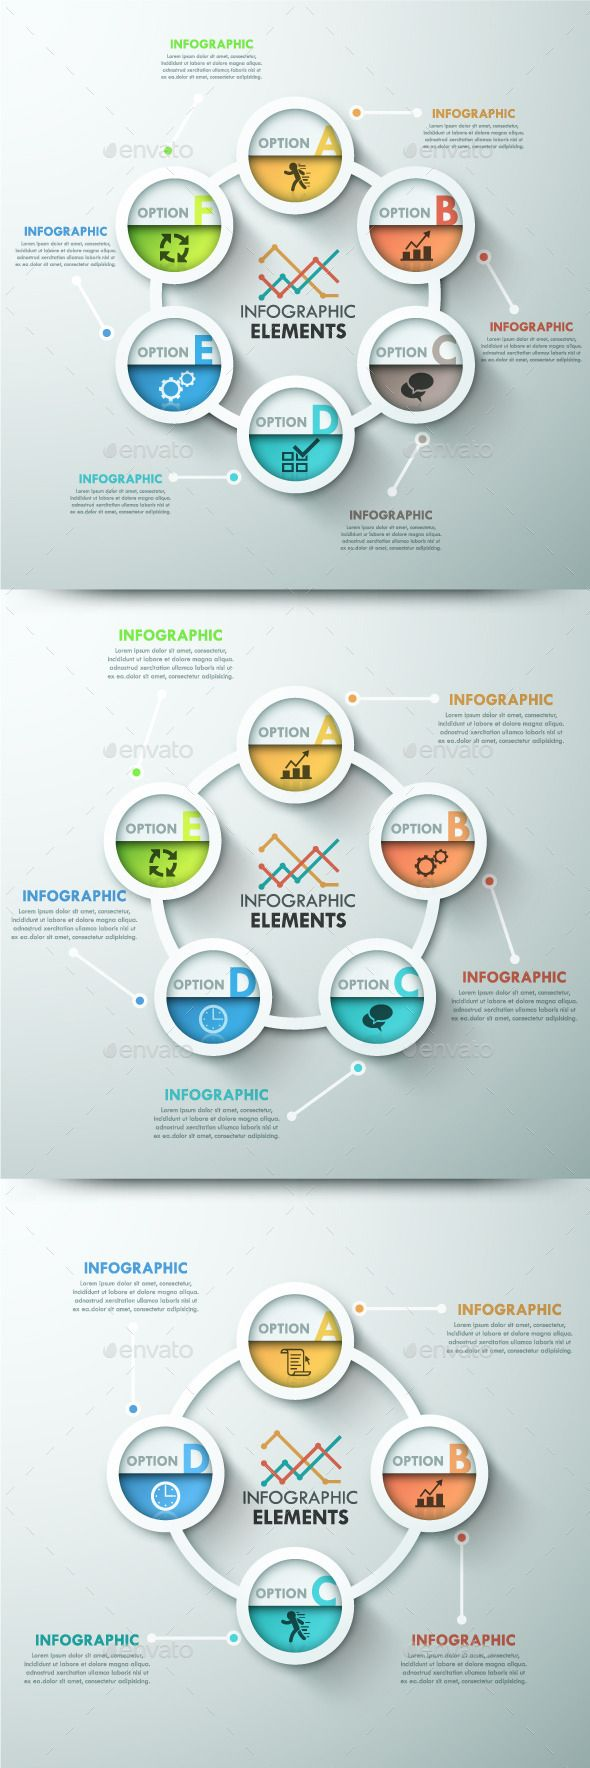 25 best Infographics images on Pinterest | Info graphics ...